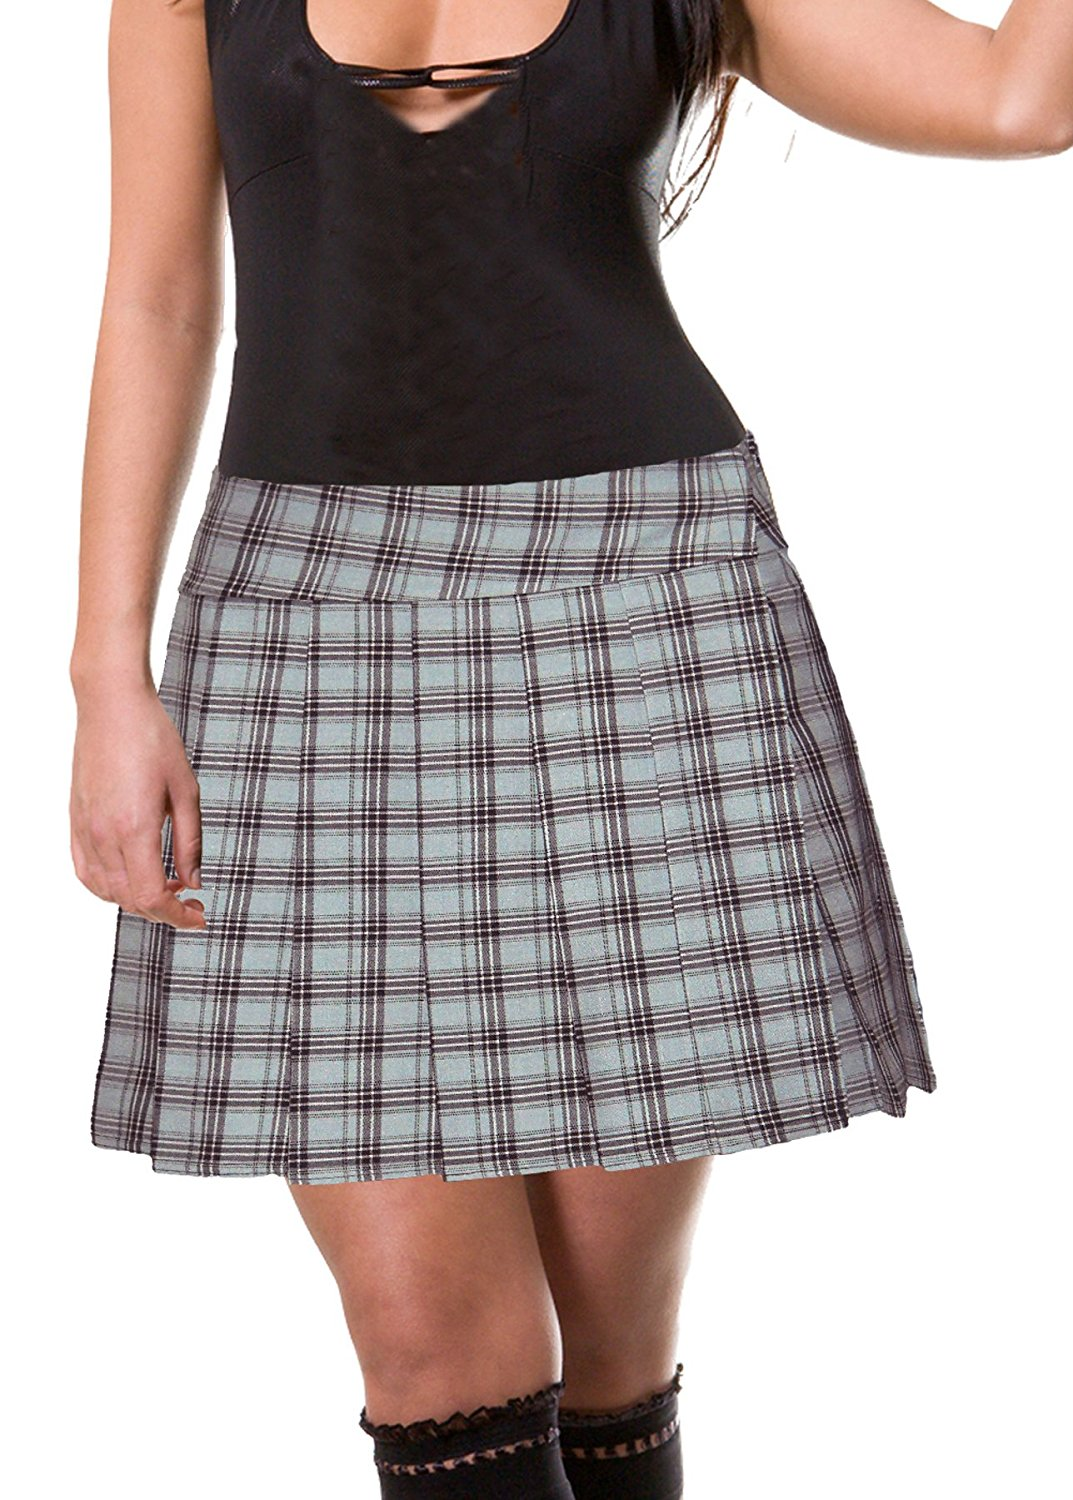 acd9c41dd8aab Get Quotations · Light Gray Plus Size Schoolgirl Tartan Plaid Pleated Skirt  Gawler Plus Long